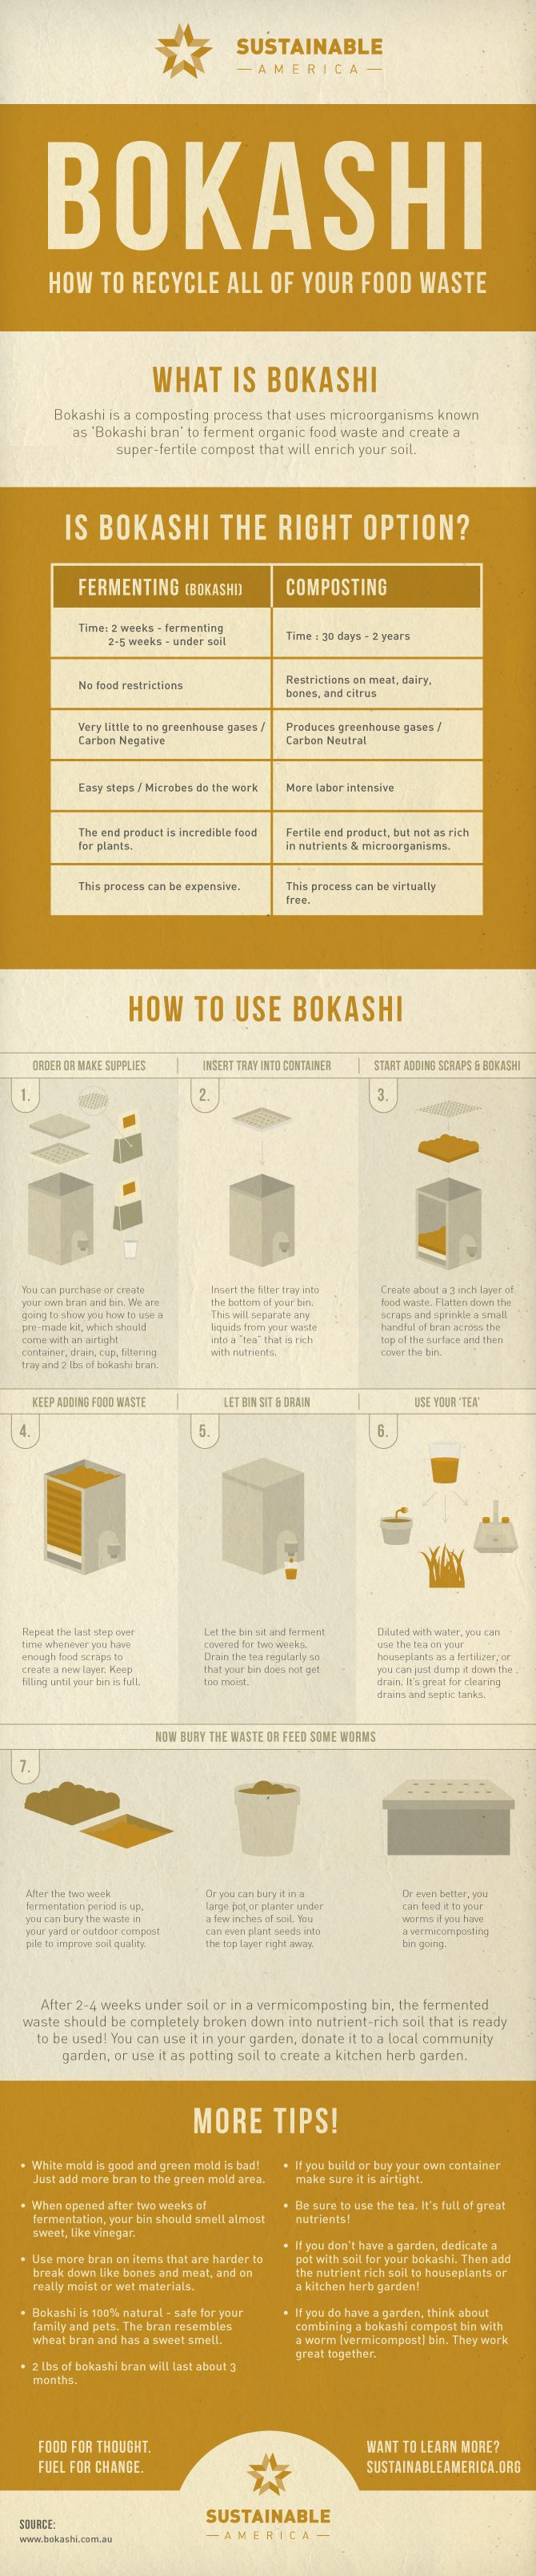 Learn how to #compost the #Bokashi way with this handy infographic from www.sustainableamerica.org